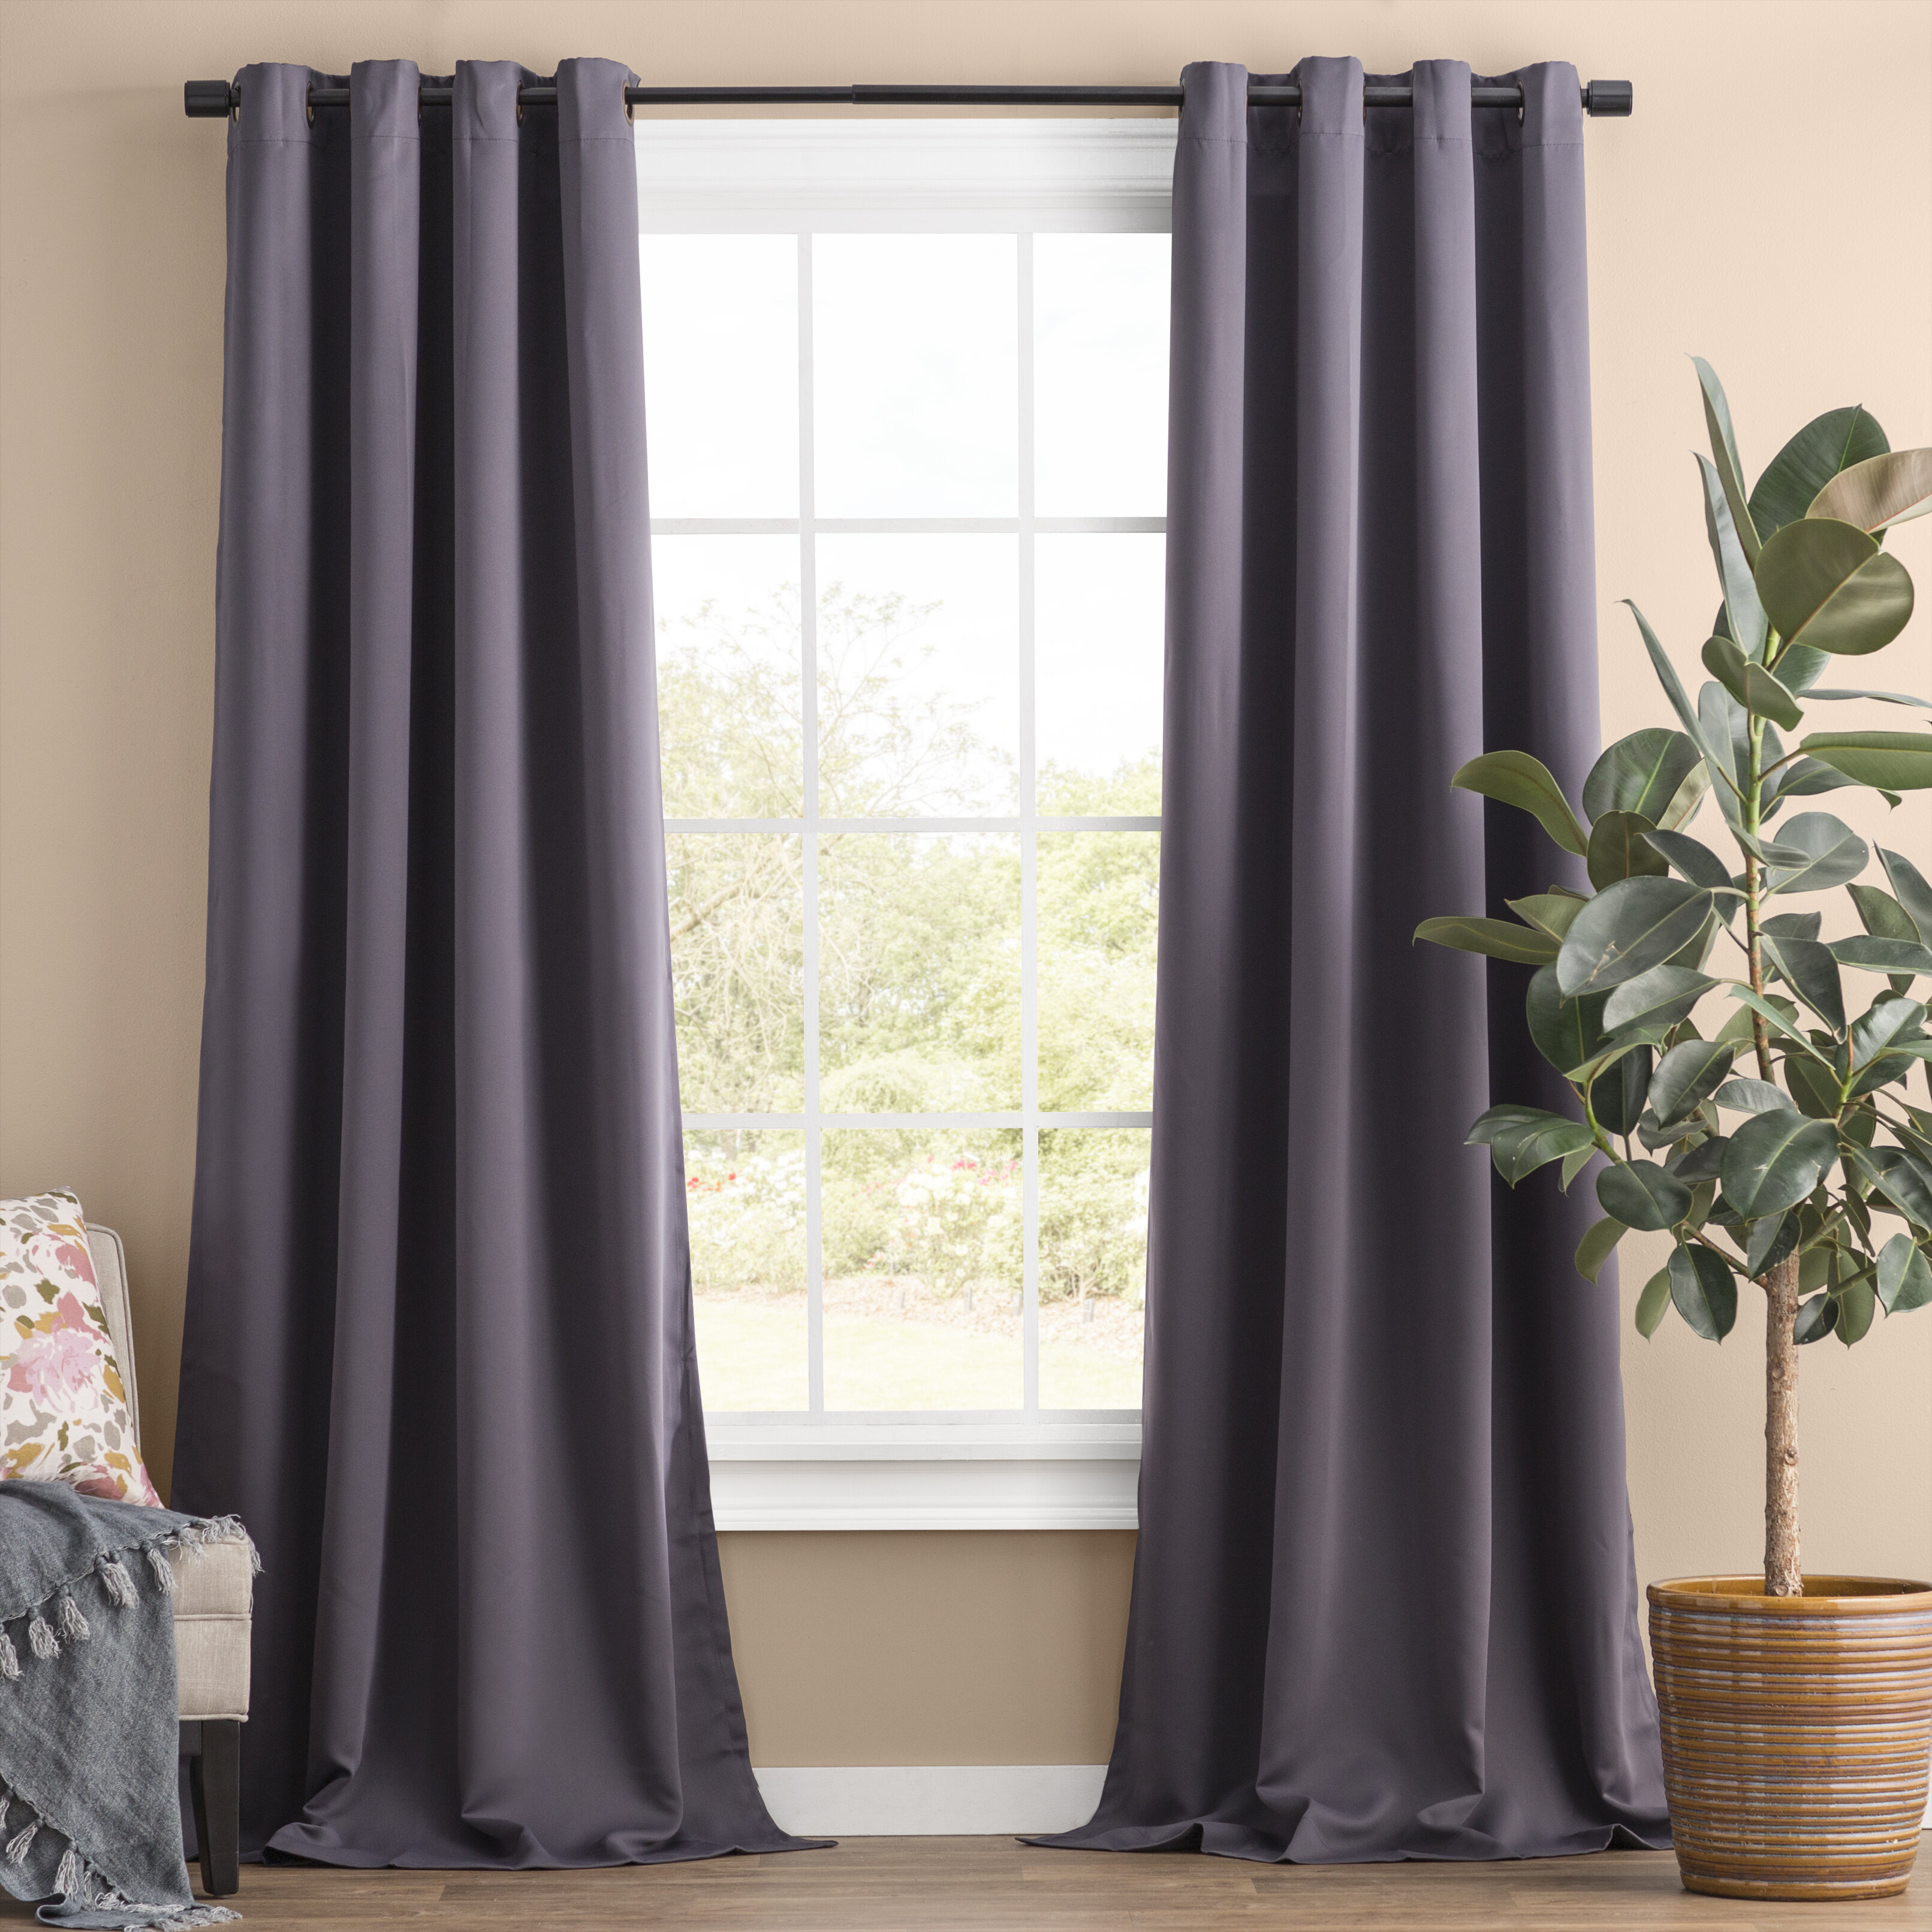 Solid Blackout Thermal Grommet Curtain Panels Regarding Blackout Grommet Curtain Panels (View 3 of 20)